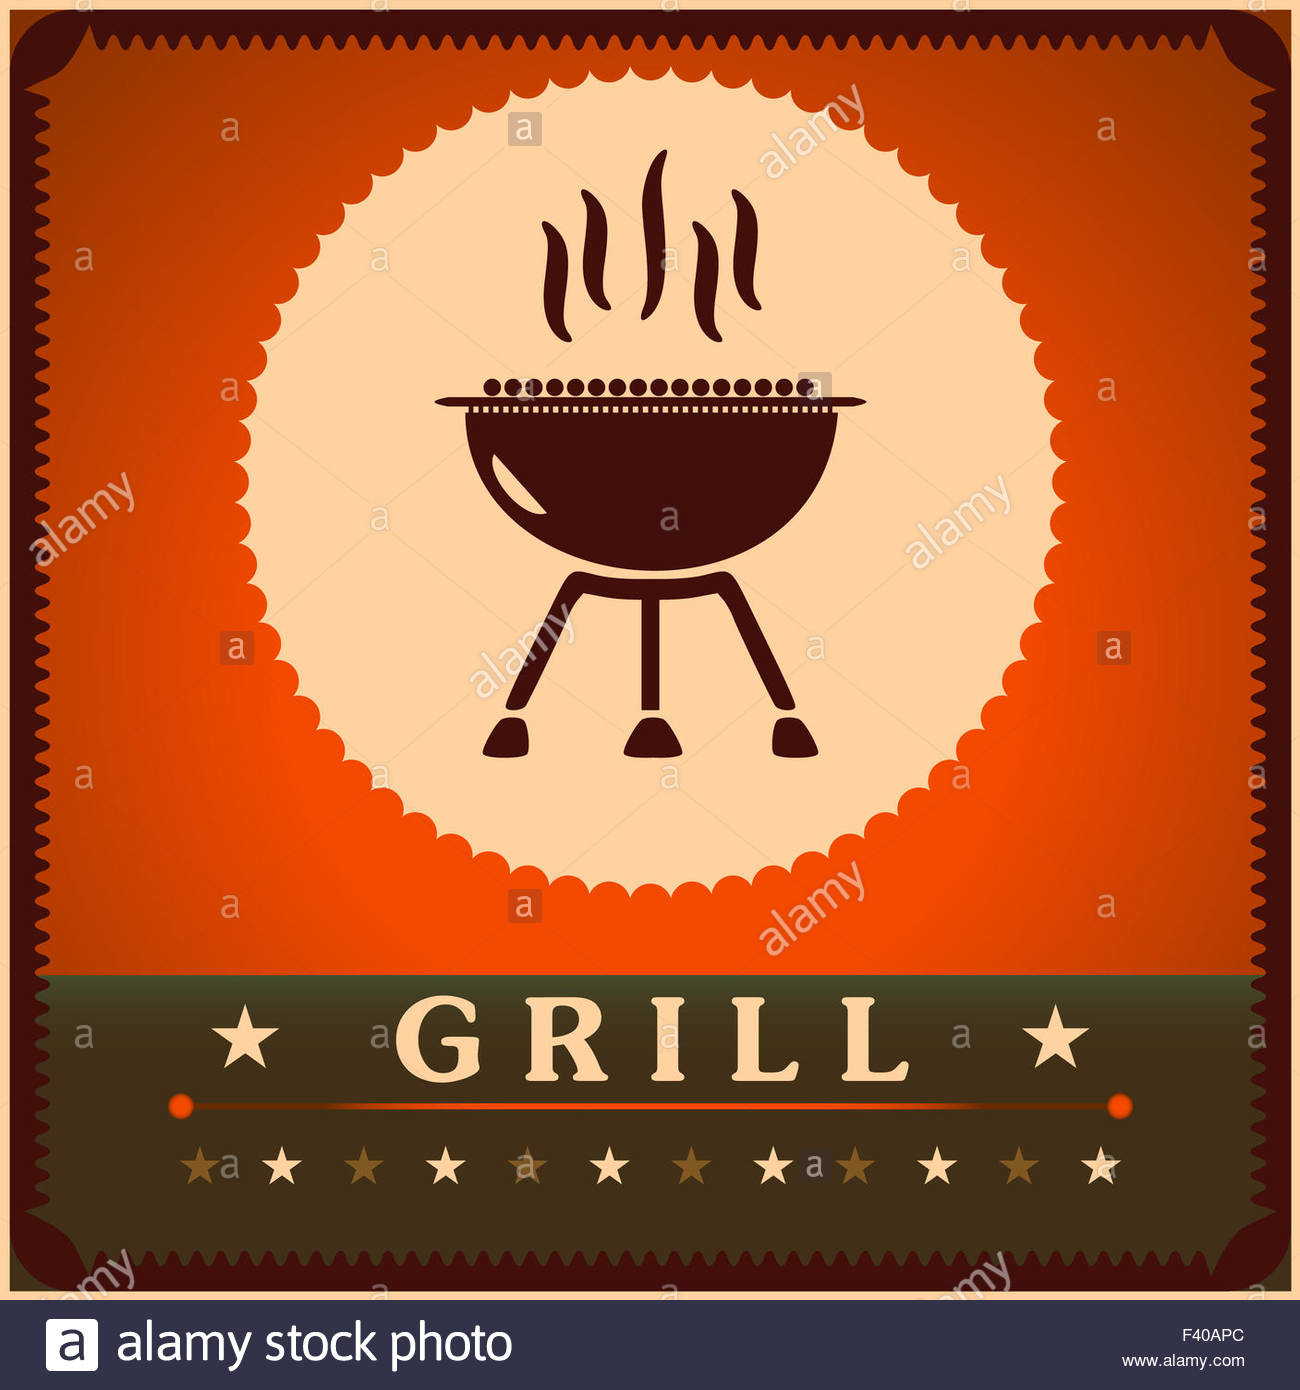 Tolle Grillkarten Vorlage Ideen - Entry Level Resume Vorlagen ...